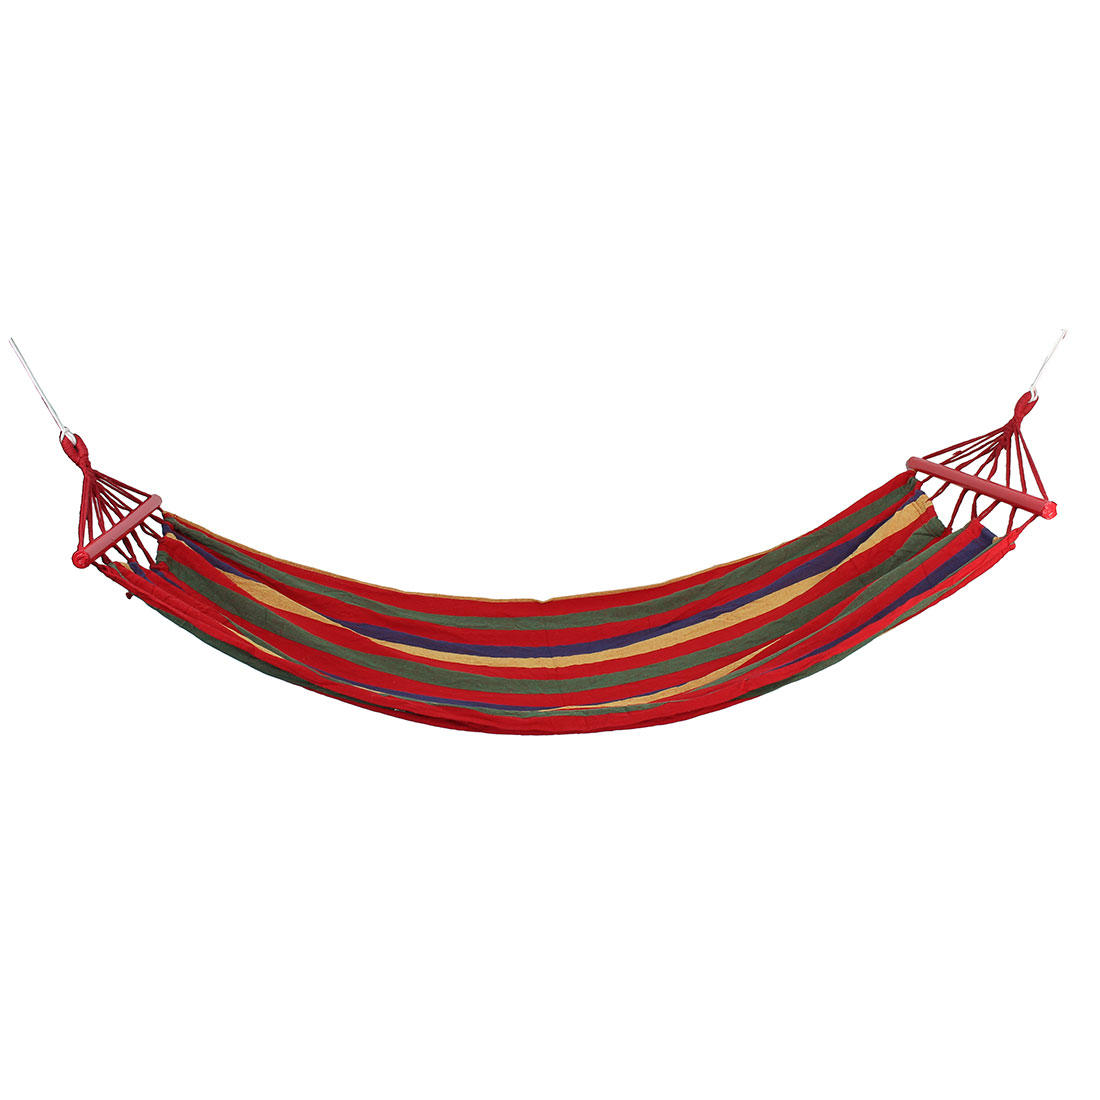 Outdoor Camping Travel Canvas Spreader Bar Beach Swing Bed Suspended Hammock